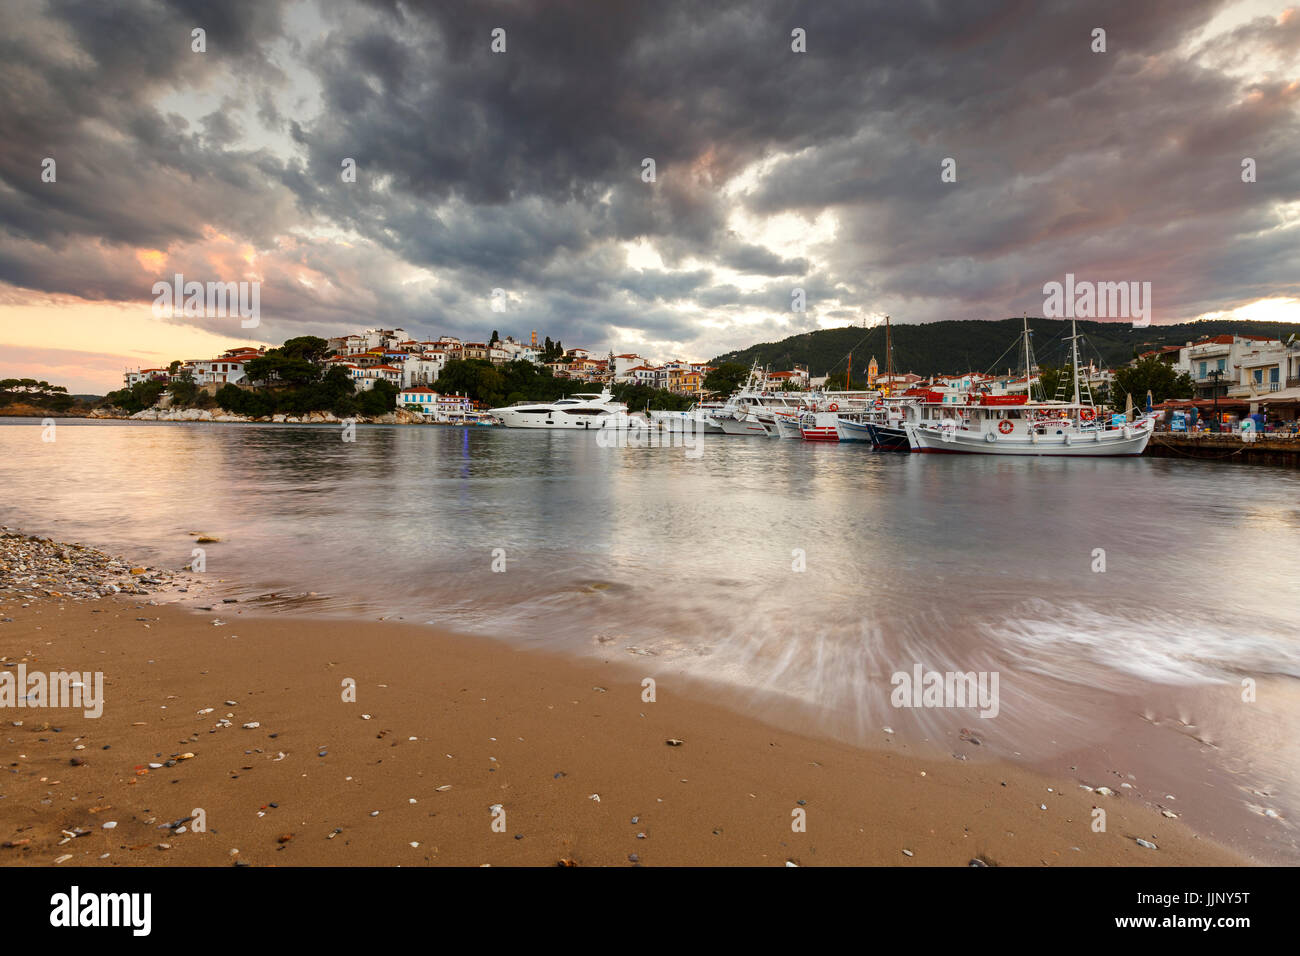 Evening view of the harbour on Skiathos island, Greece. - Stock Image